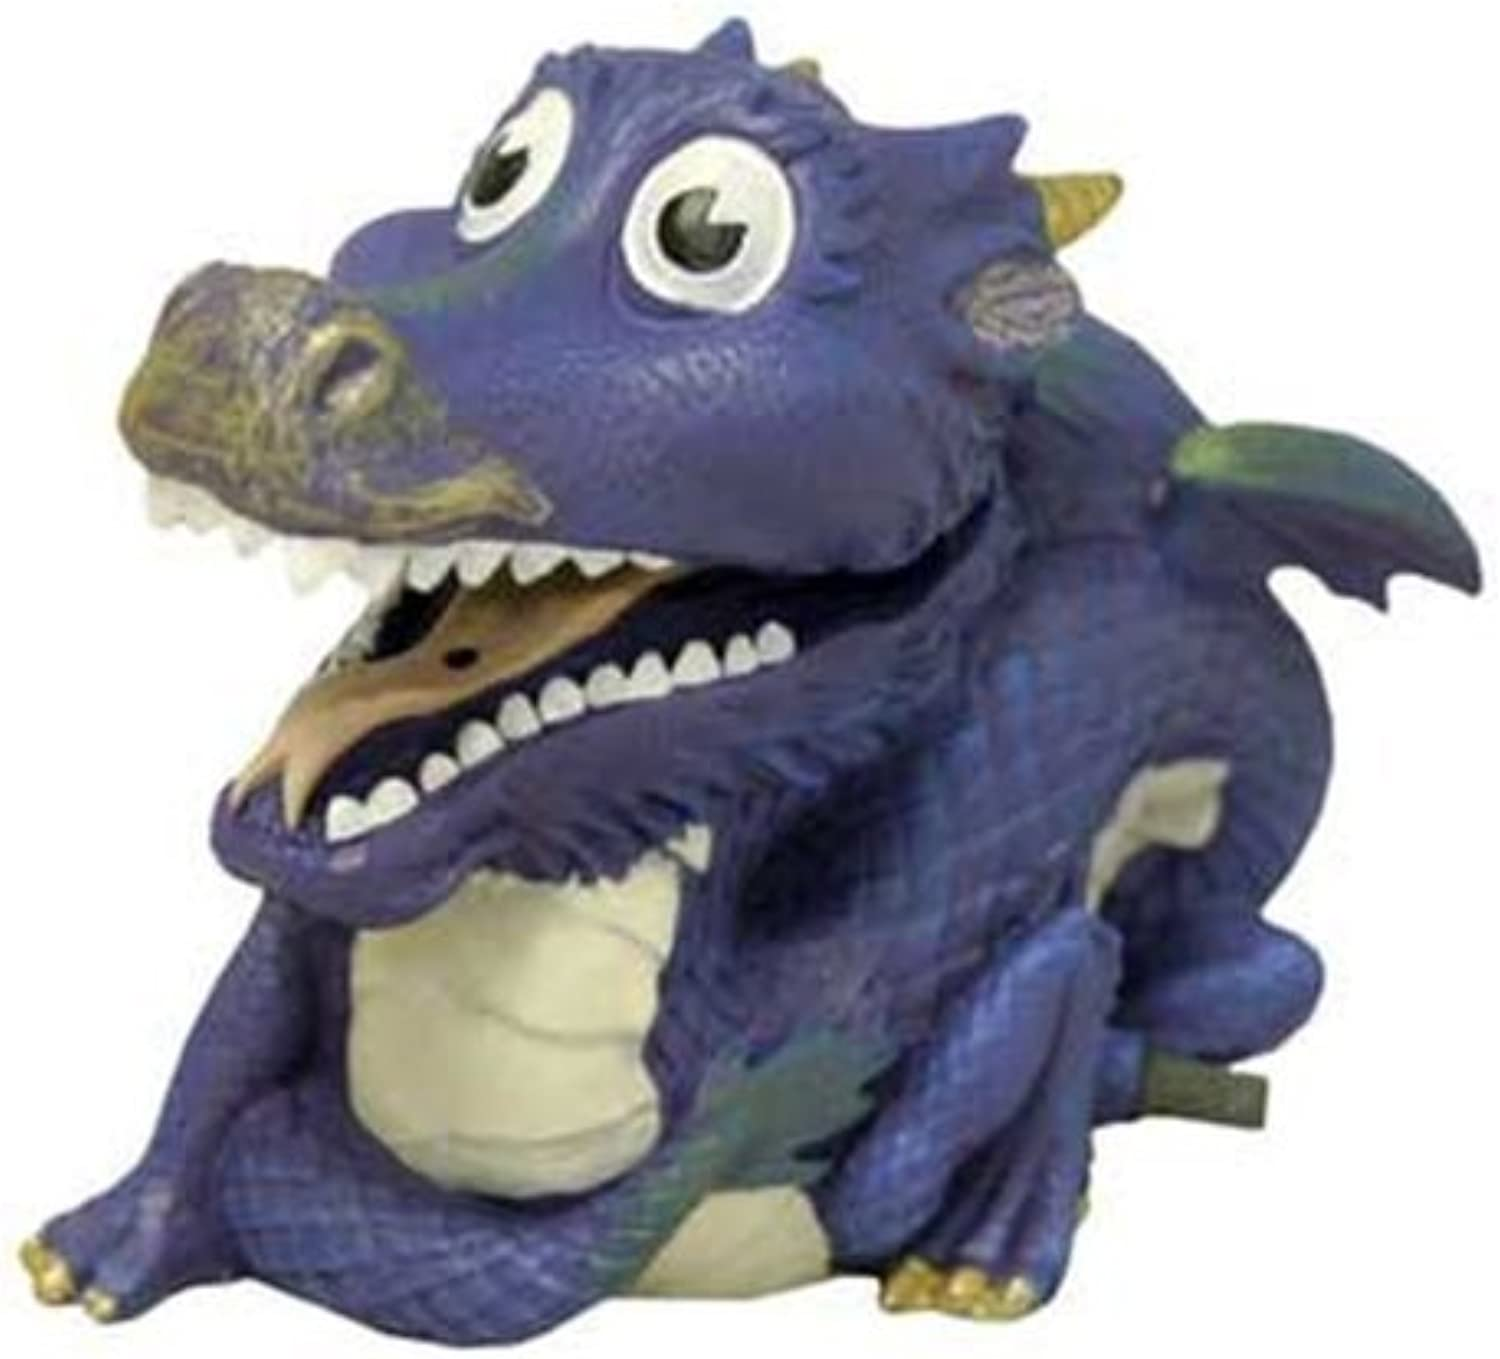 bluee Ribbon Pet Products Exotic Environments Bubbling Action Dragon Aquarium Ornament by bluee Ribbon Pet Products (English manual)